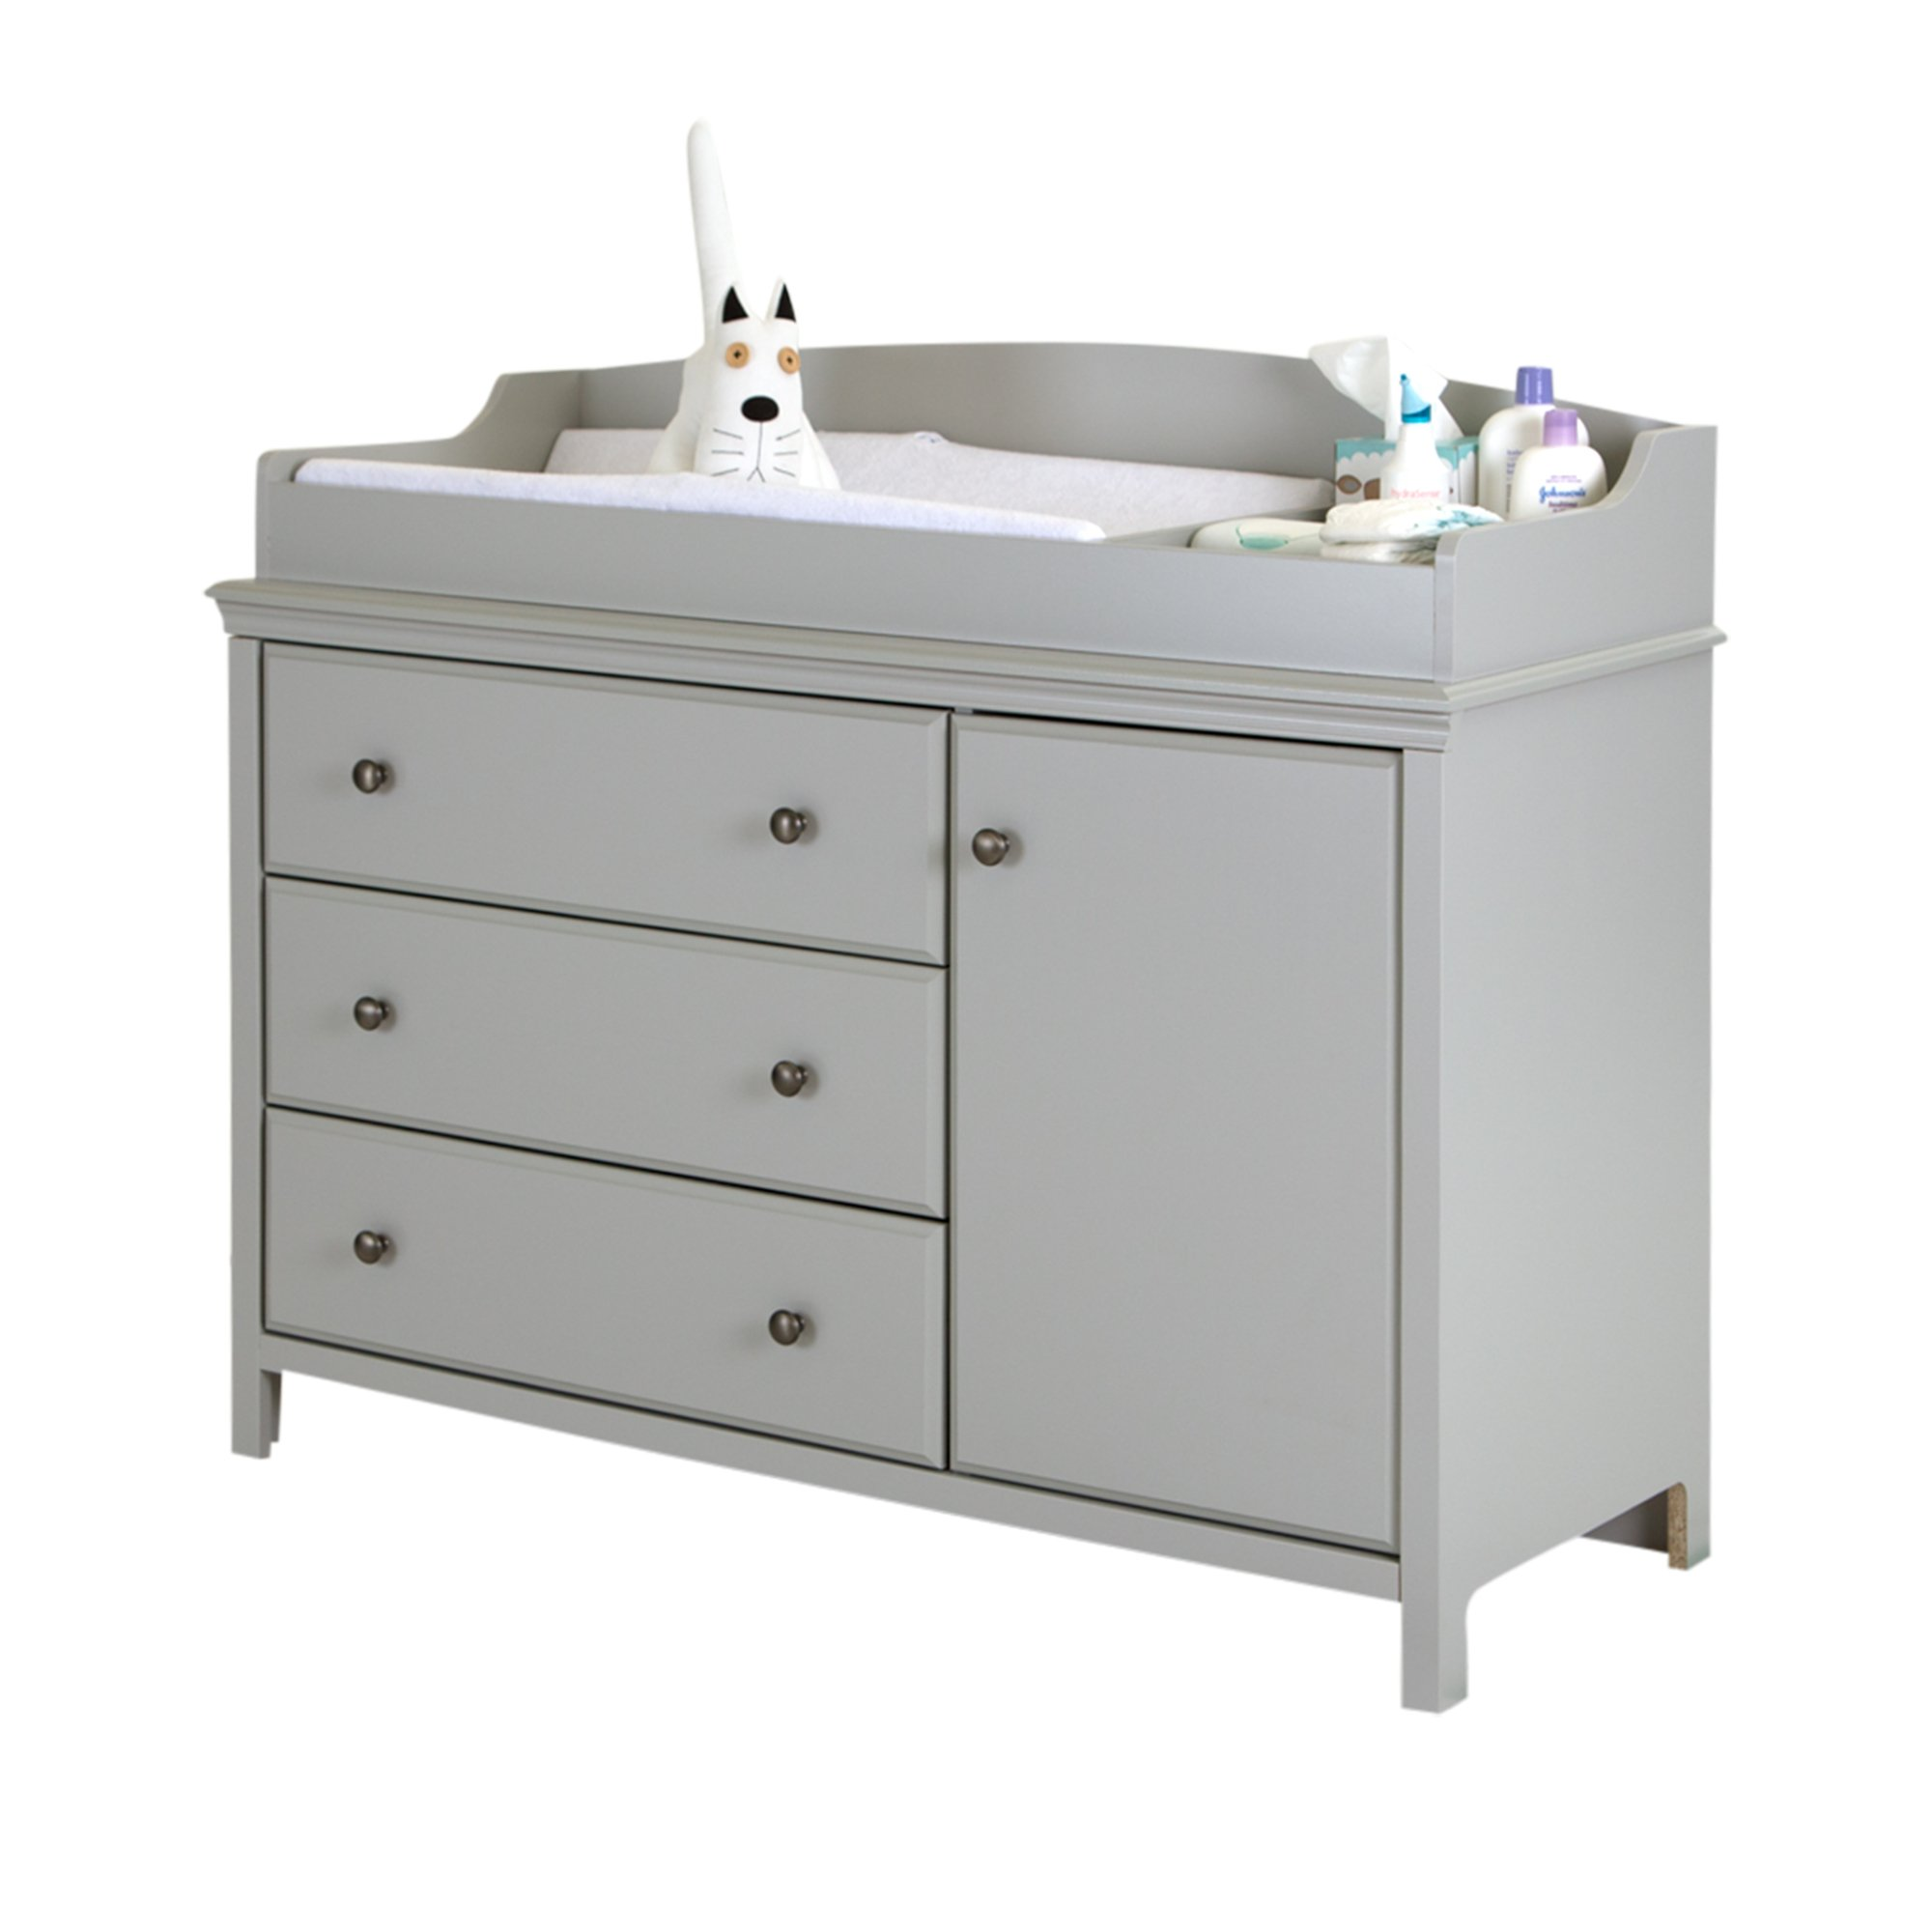 South Shore Cotton Candy Changing Table with Removable Changing Station, Sumptuous Cherry by South Shore (Image #6)